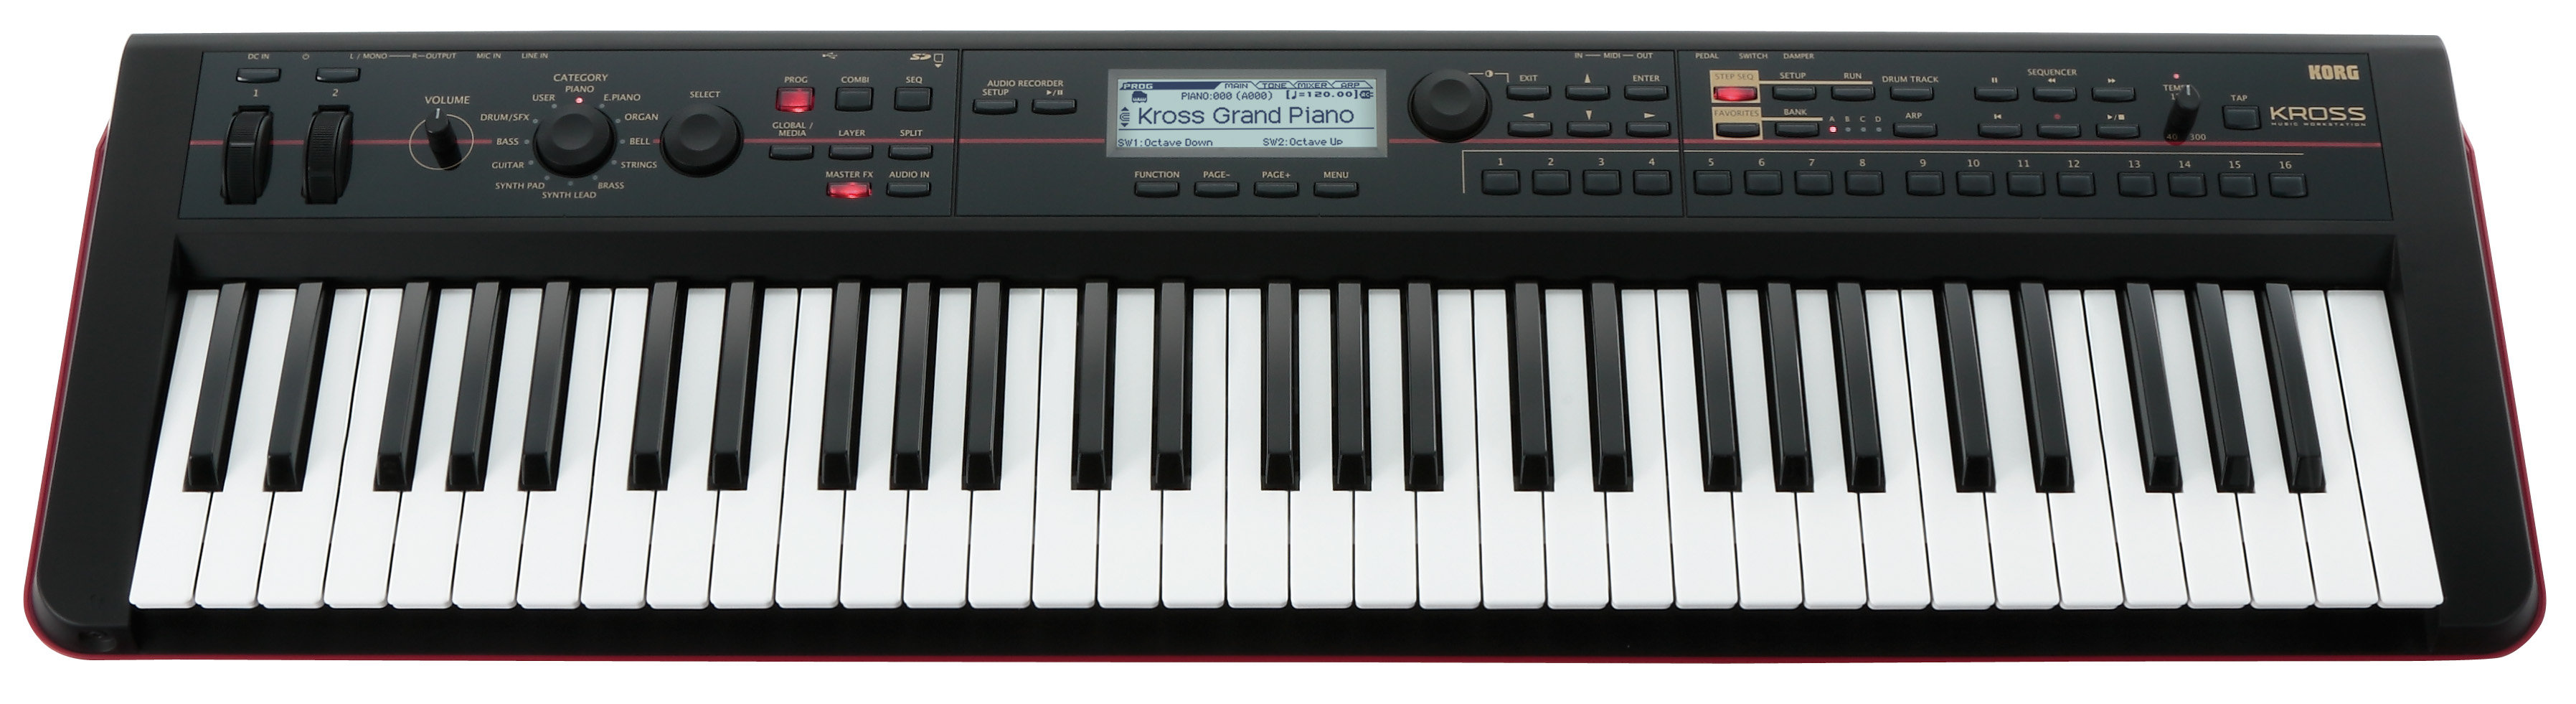 Korg KROSS61 Mobile Workstation